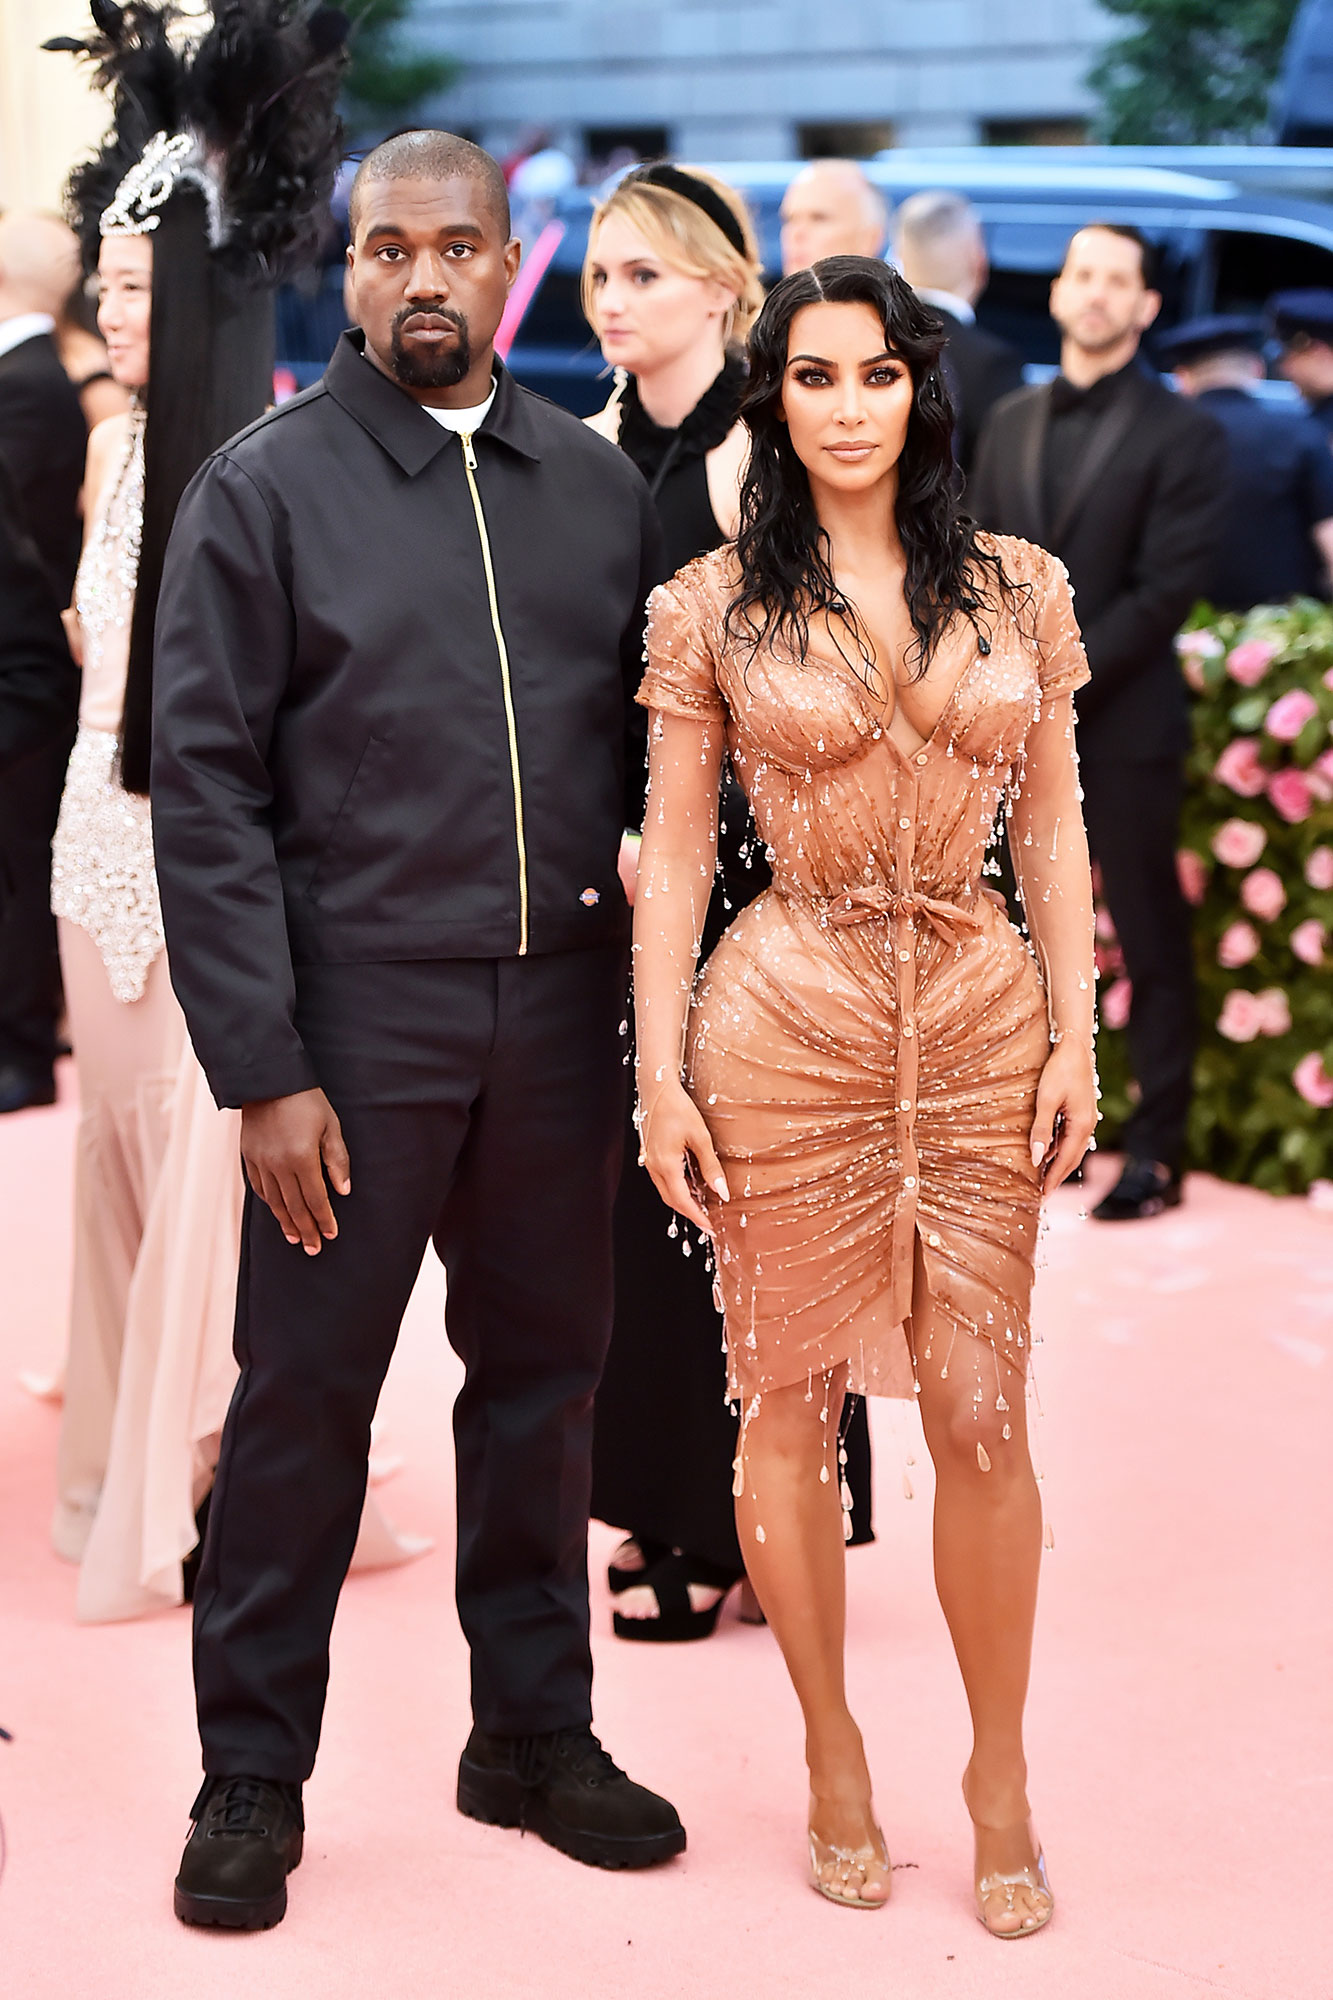 Kanye West and Kim Kardashian West met gala 2019 couples - The rapper rocked all black everything, which allowed his better half to take centerstage in her shape-shifting Mugler mini.